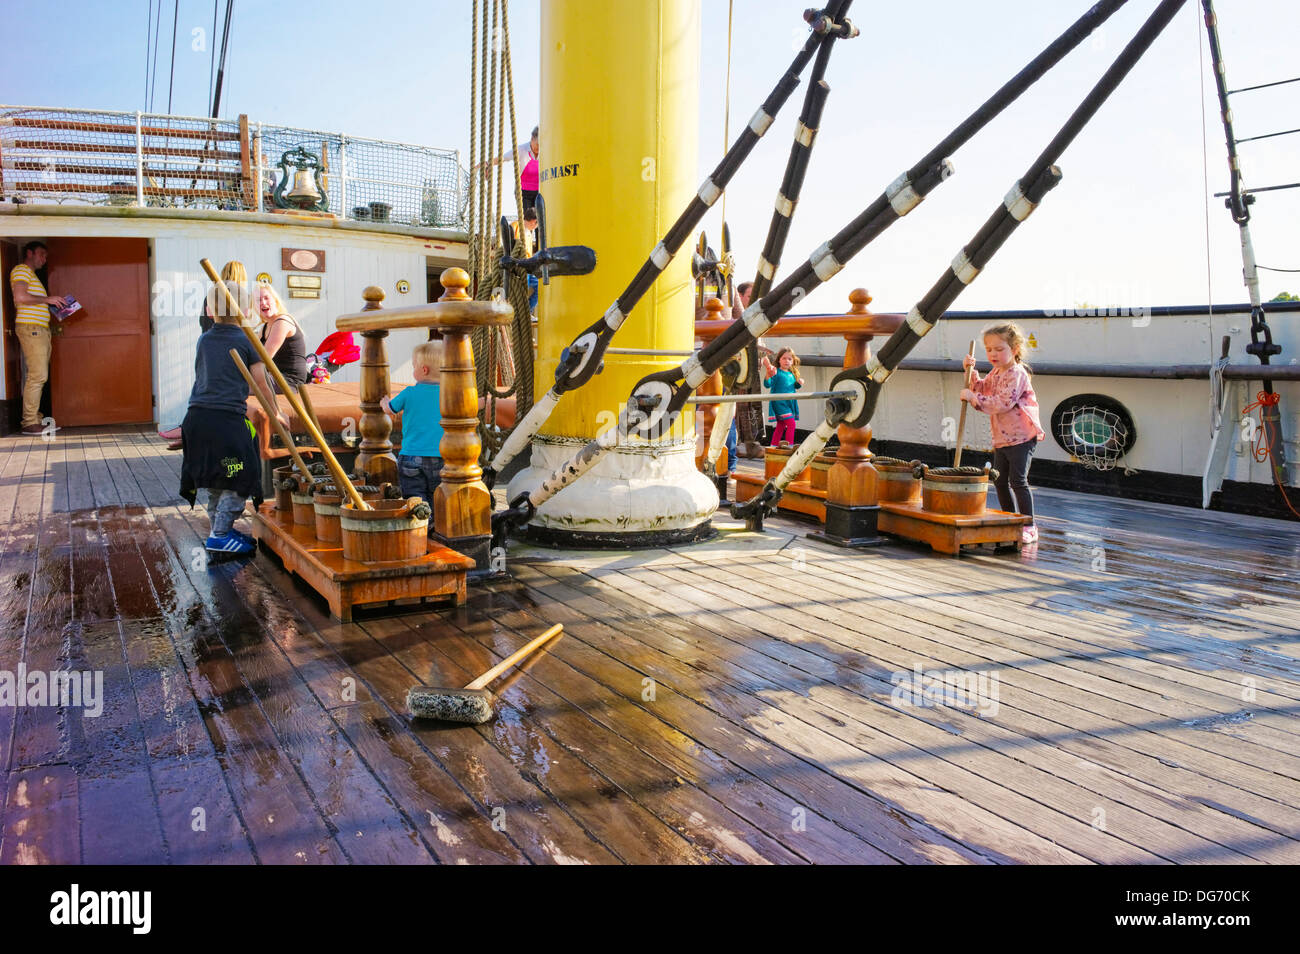 Children visiting the Tall ship Glenlee sample life on board by washing the deck with water and brushes watched by their parents - Stock Image